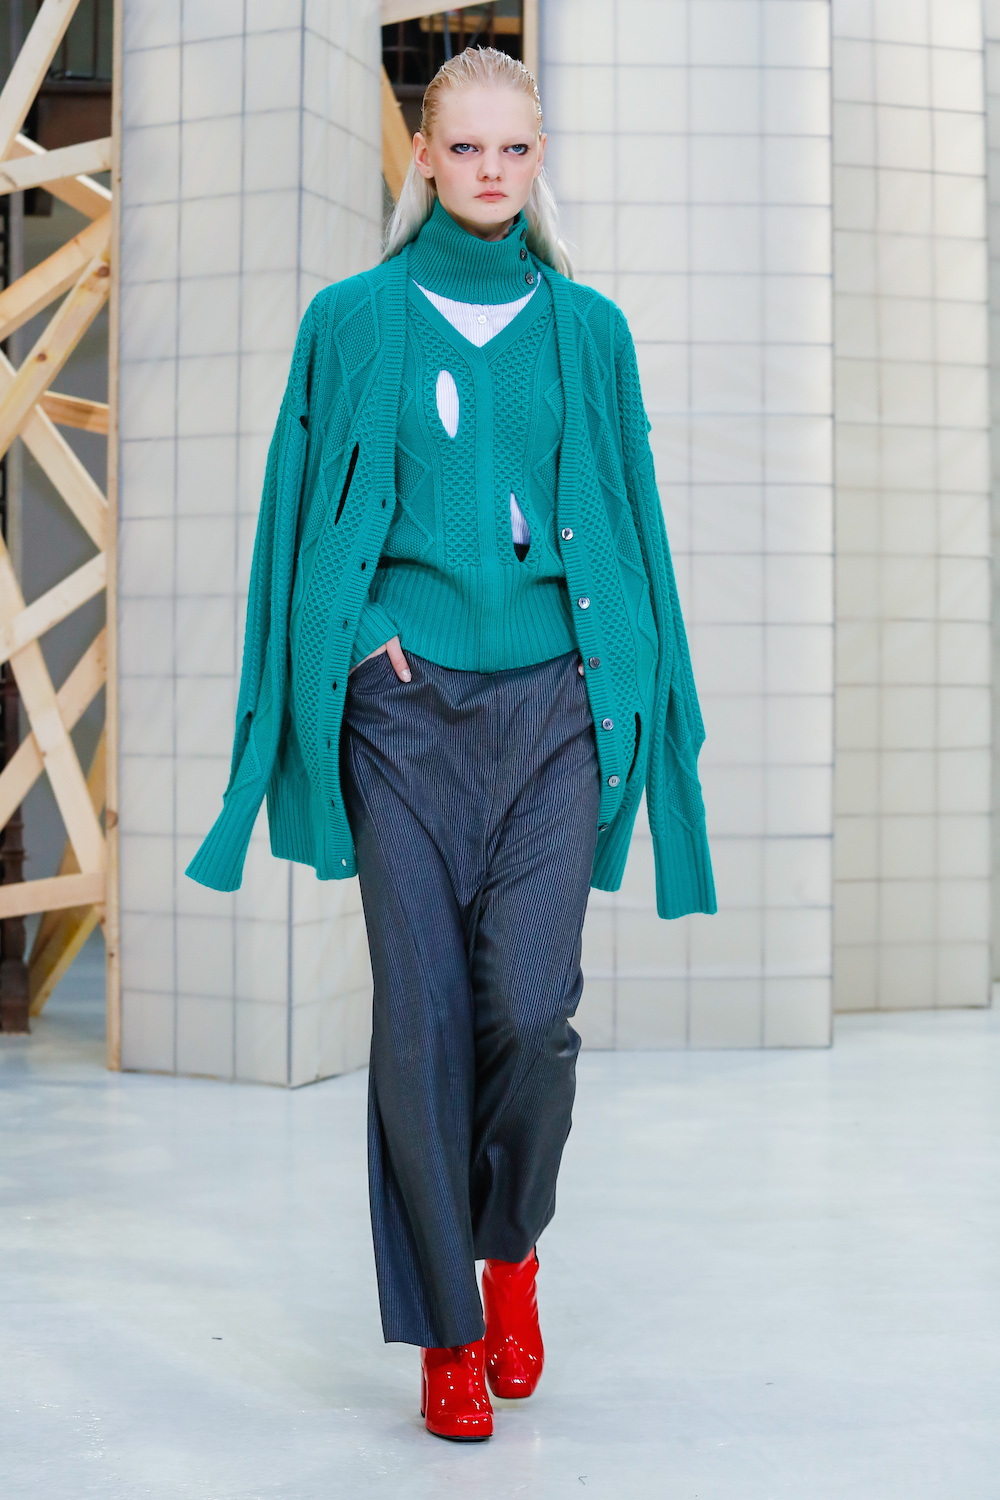 Aalto International Ready-to-Wear Collection Fall Winter 2017 Paris Fashion Week CREDIT: Guillaume Roujas